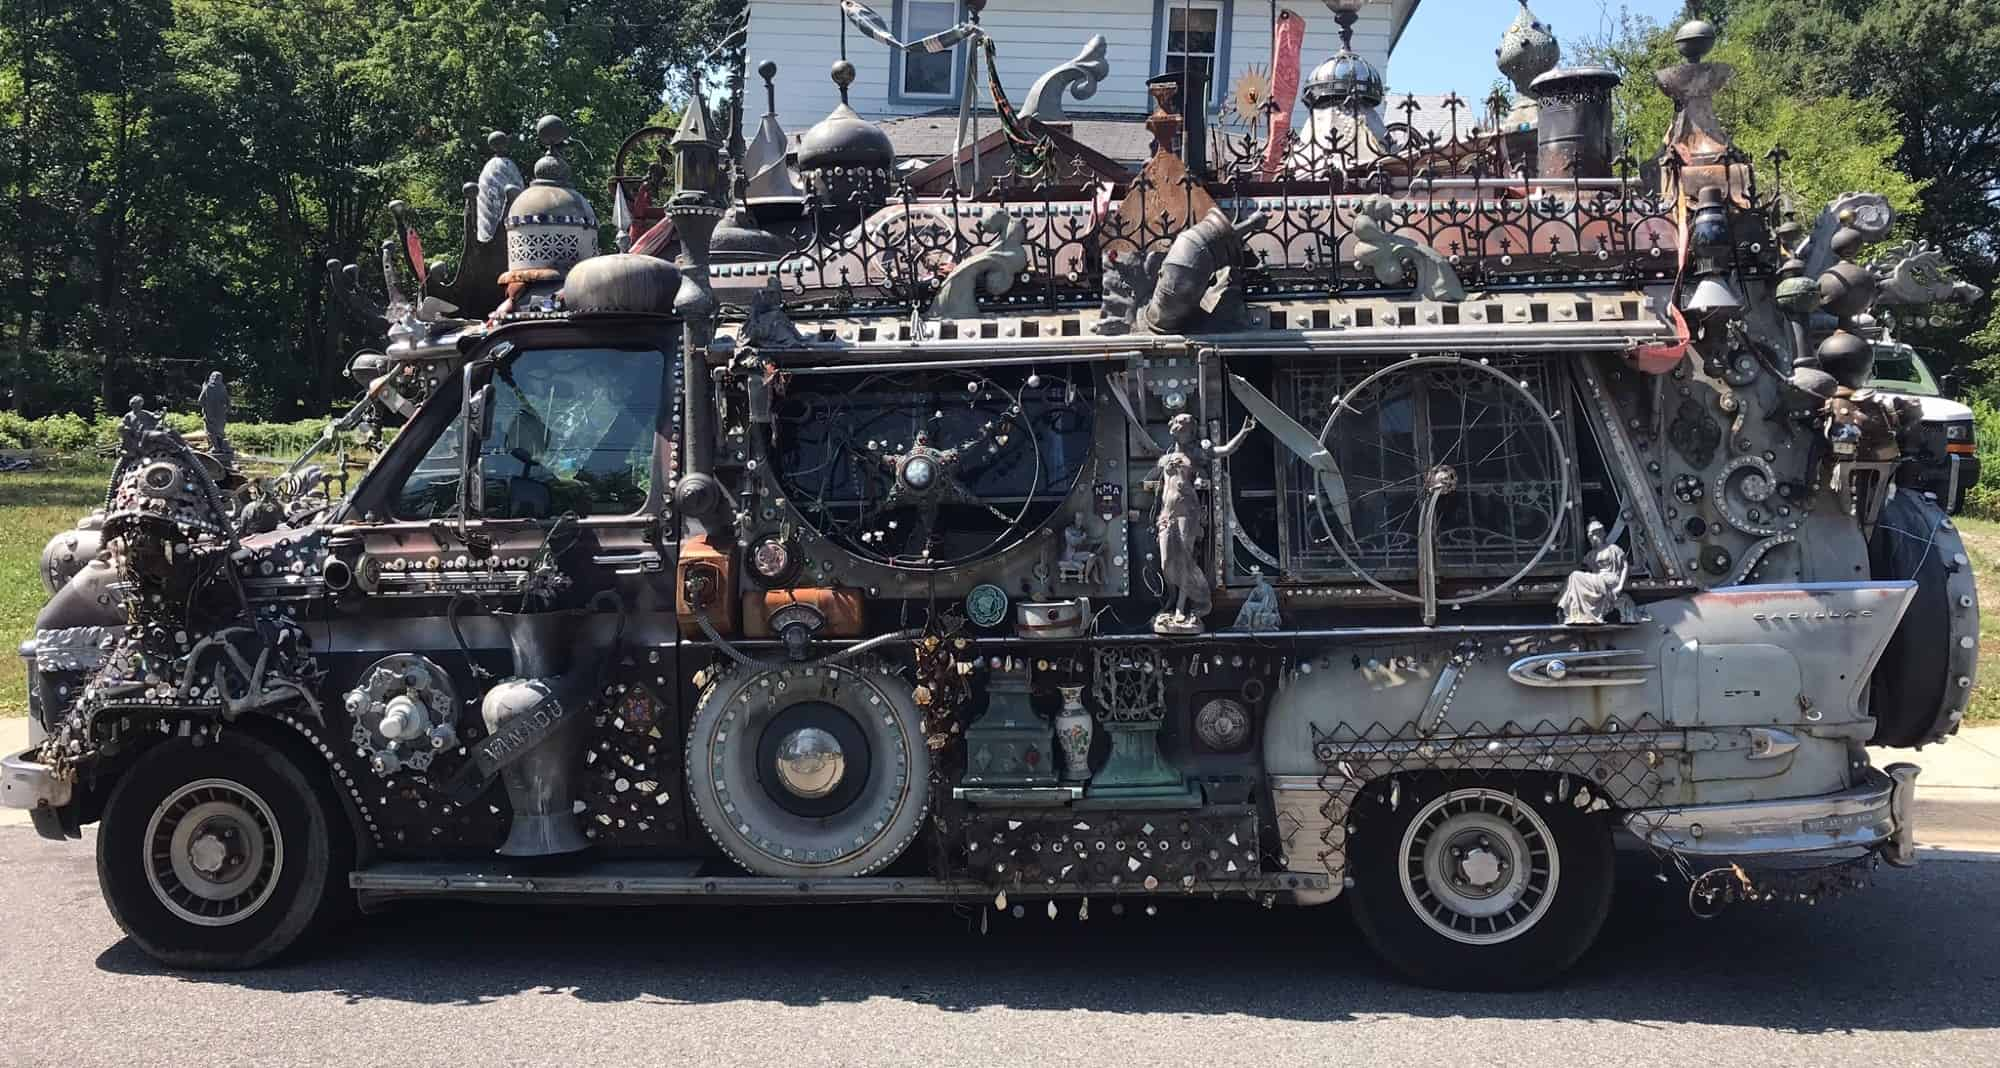 Art car van, fully adorned with metal items on exterior of vehicle